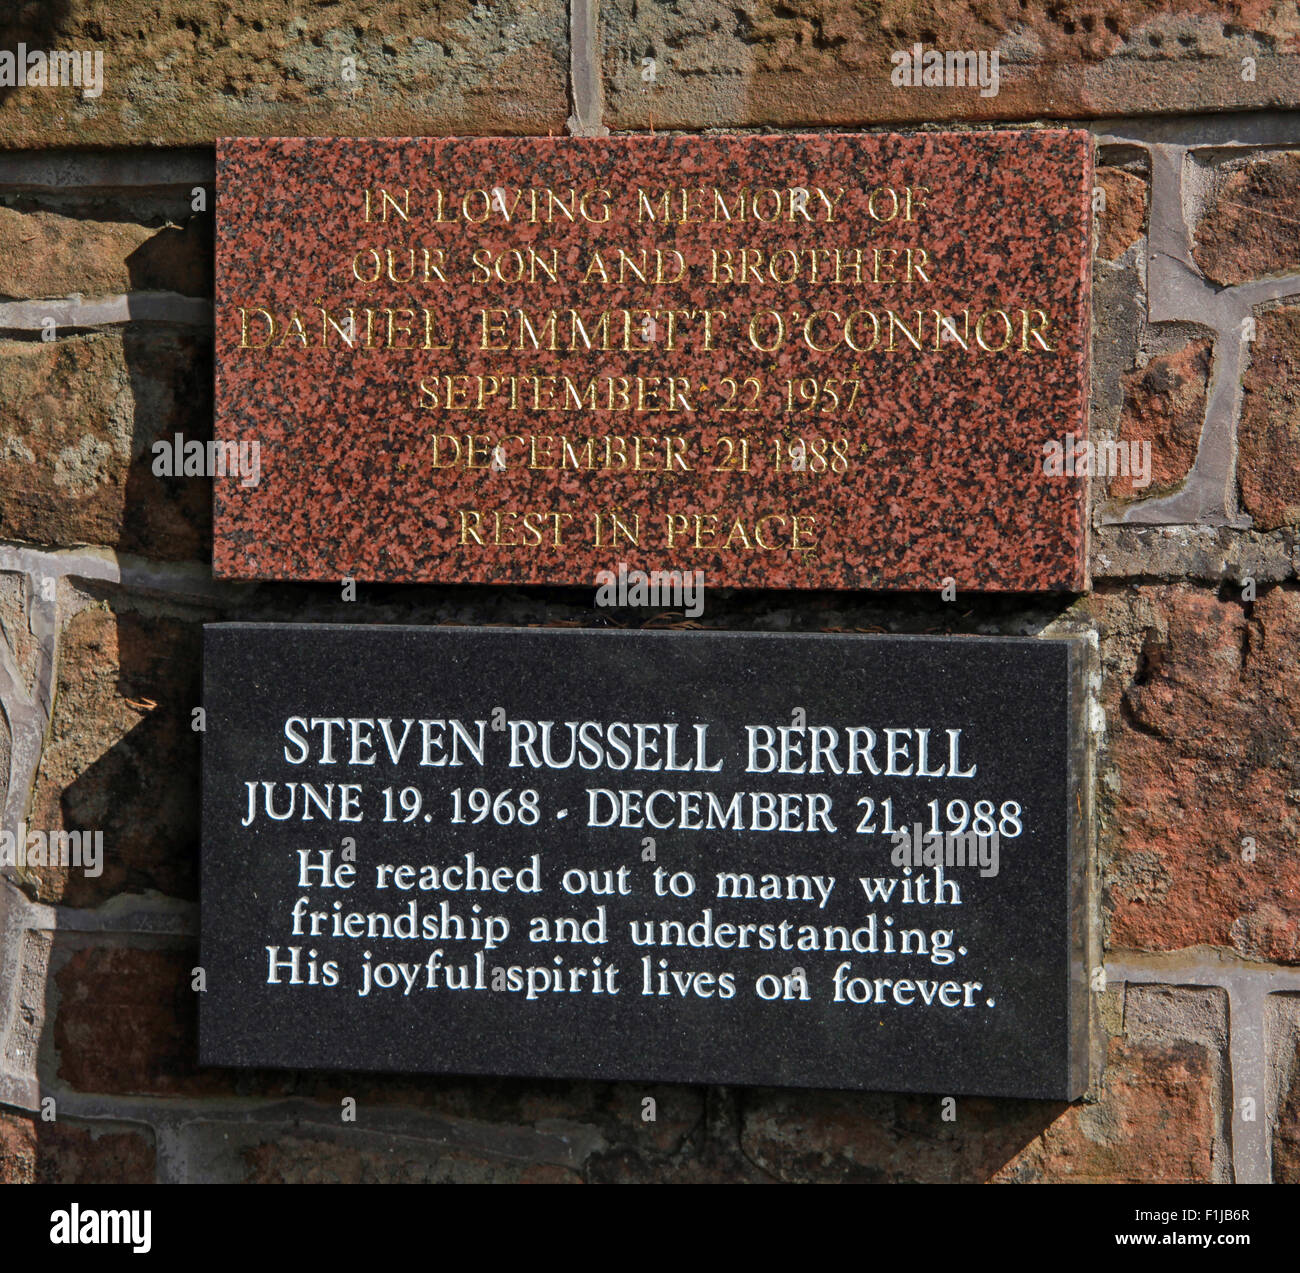 Emmett OConnor Steven Russel Berrell,Scotland,Lodge,Visitors,Centre,DLVC,Trust,Lockerbie,Memorial,Scotland,Victims,Pan,Am,PanAm,flight,103,bomb,bombing,terrorist,December,1988,attack,crash,dead,site,21/12/1988,270,victims,Scottish,Town,conspiracy,blast,Tundergarth,Room,garden,of,Dryfes,New York,GoTonySmith,Lodge,Visitors,Centre,DLVC,Trust,Lockerbie,Memorial,Scotland,Victims,Pan,Am,PanAm,flight,103,bomb,bombing,terrorist,December,1988,attack,crash,dead,site,21/12/1988,270,victims,Scottish,Town,conspiracy,blast,Tundergarth,Room,garden,of,Dryfesdale,Cemetery,news,Cultural,understanding,remembering,innocent,transatlantic,Frankfurt,Detroit,Libyan,Libya,Colonel Muammar Gaddafi,civil,case,compensation,terrorism,PA103,30,30years,years,Syracuse,University,SU,family,collections,Story,Archive,Archives,40,35,Timeline,saga,disaster,air,Scholars,program,programs,remembrance,Clipper Maid of the Seas,N739PA,Boeing,727,plane,aircraft,Scotland,UK,United Kingdom,GB,Great Britain,resting,place,Buy Pictures of,Buy Images Of,New York,al megrahi,30 Years